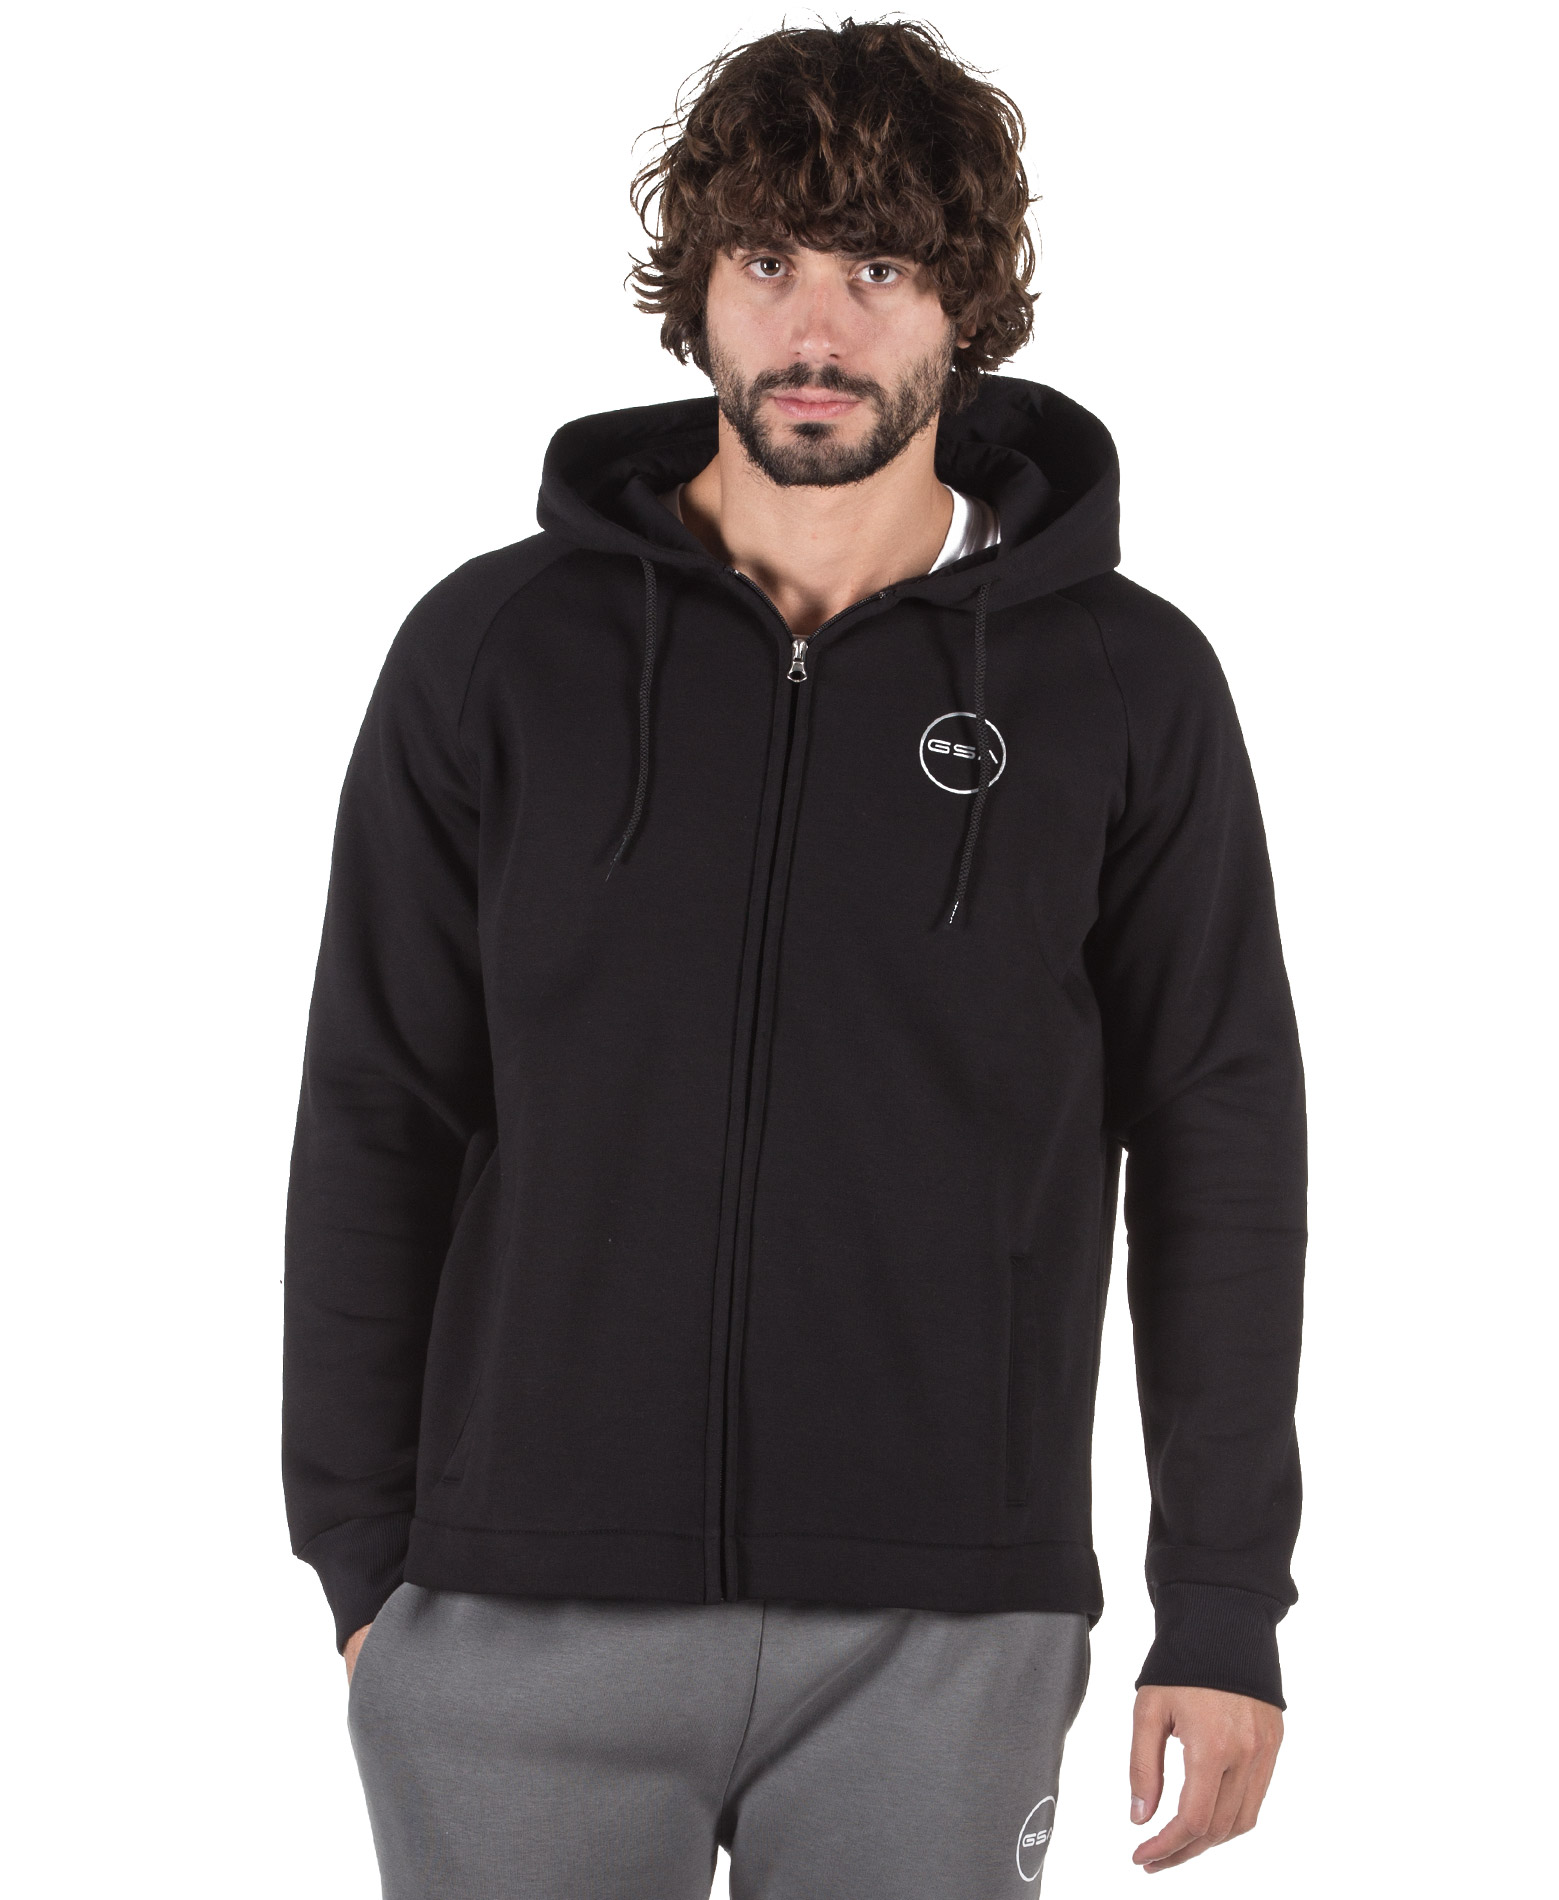 GSA SUPERCOTTON JACKET 17-18132-01 JET BLACK Μαύρο